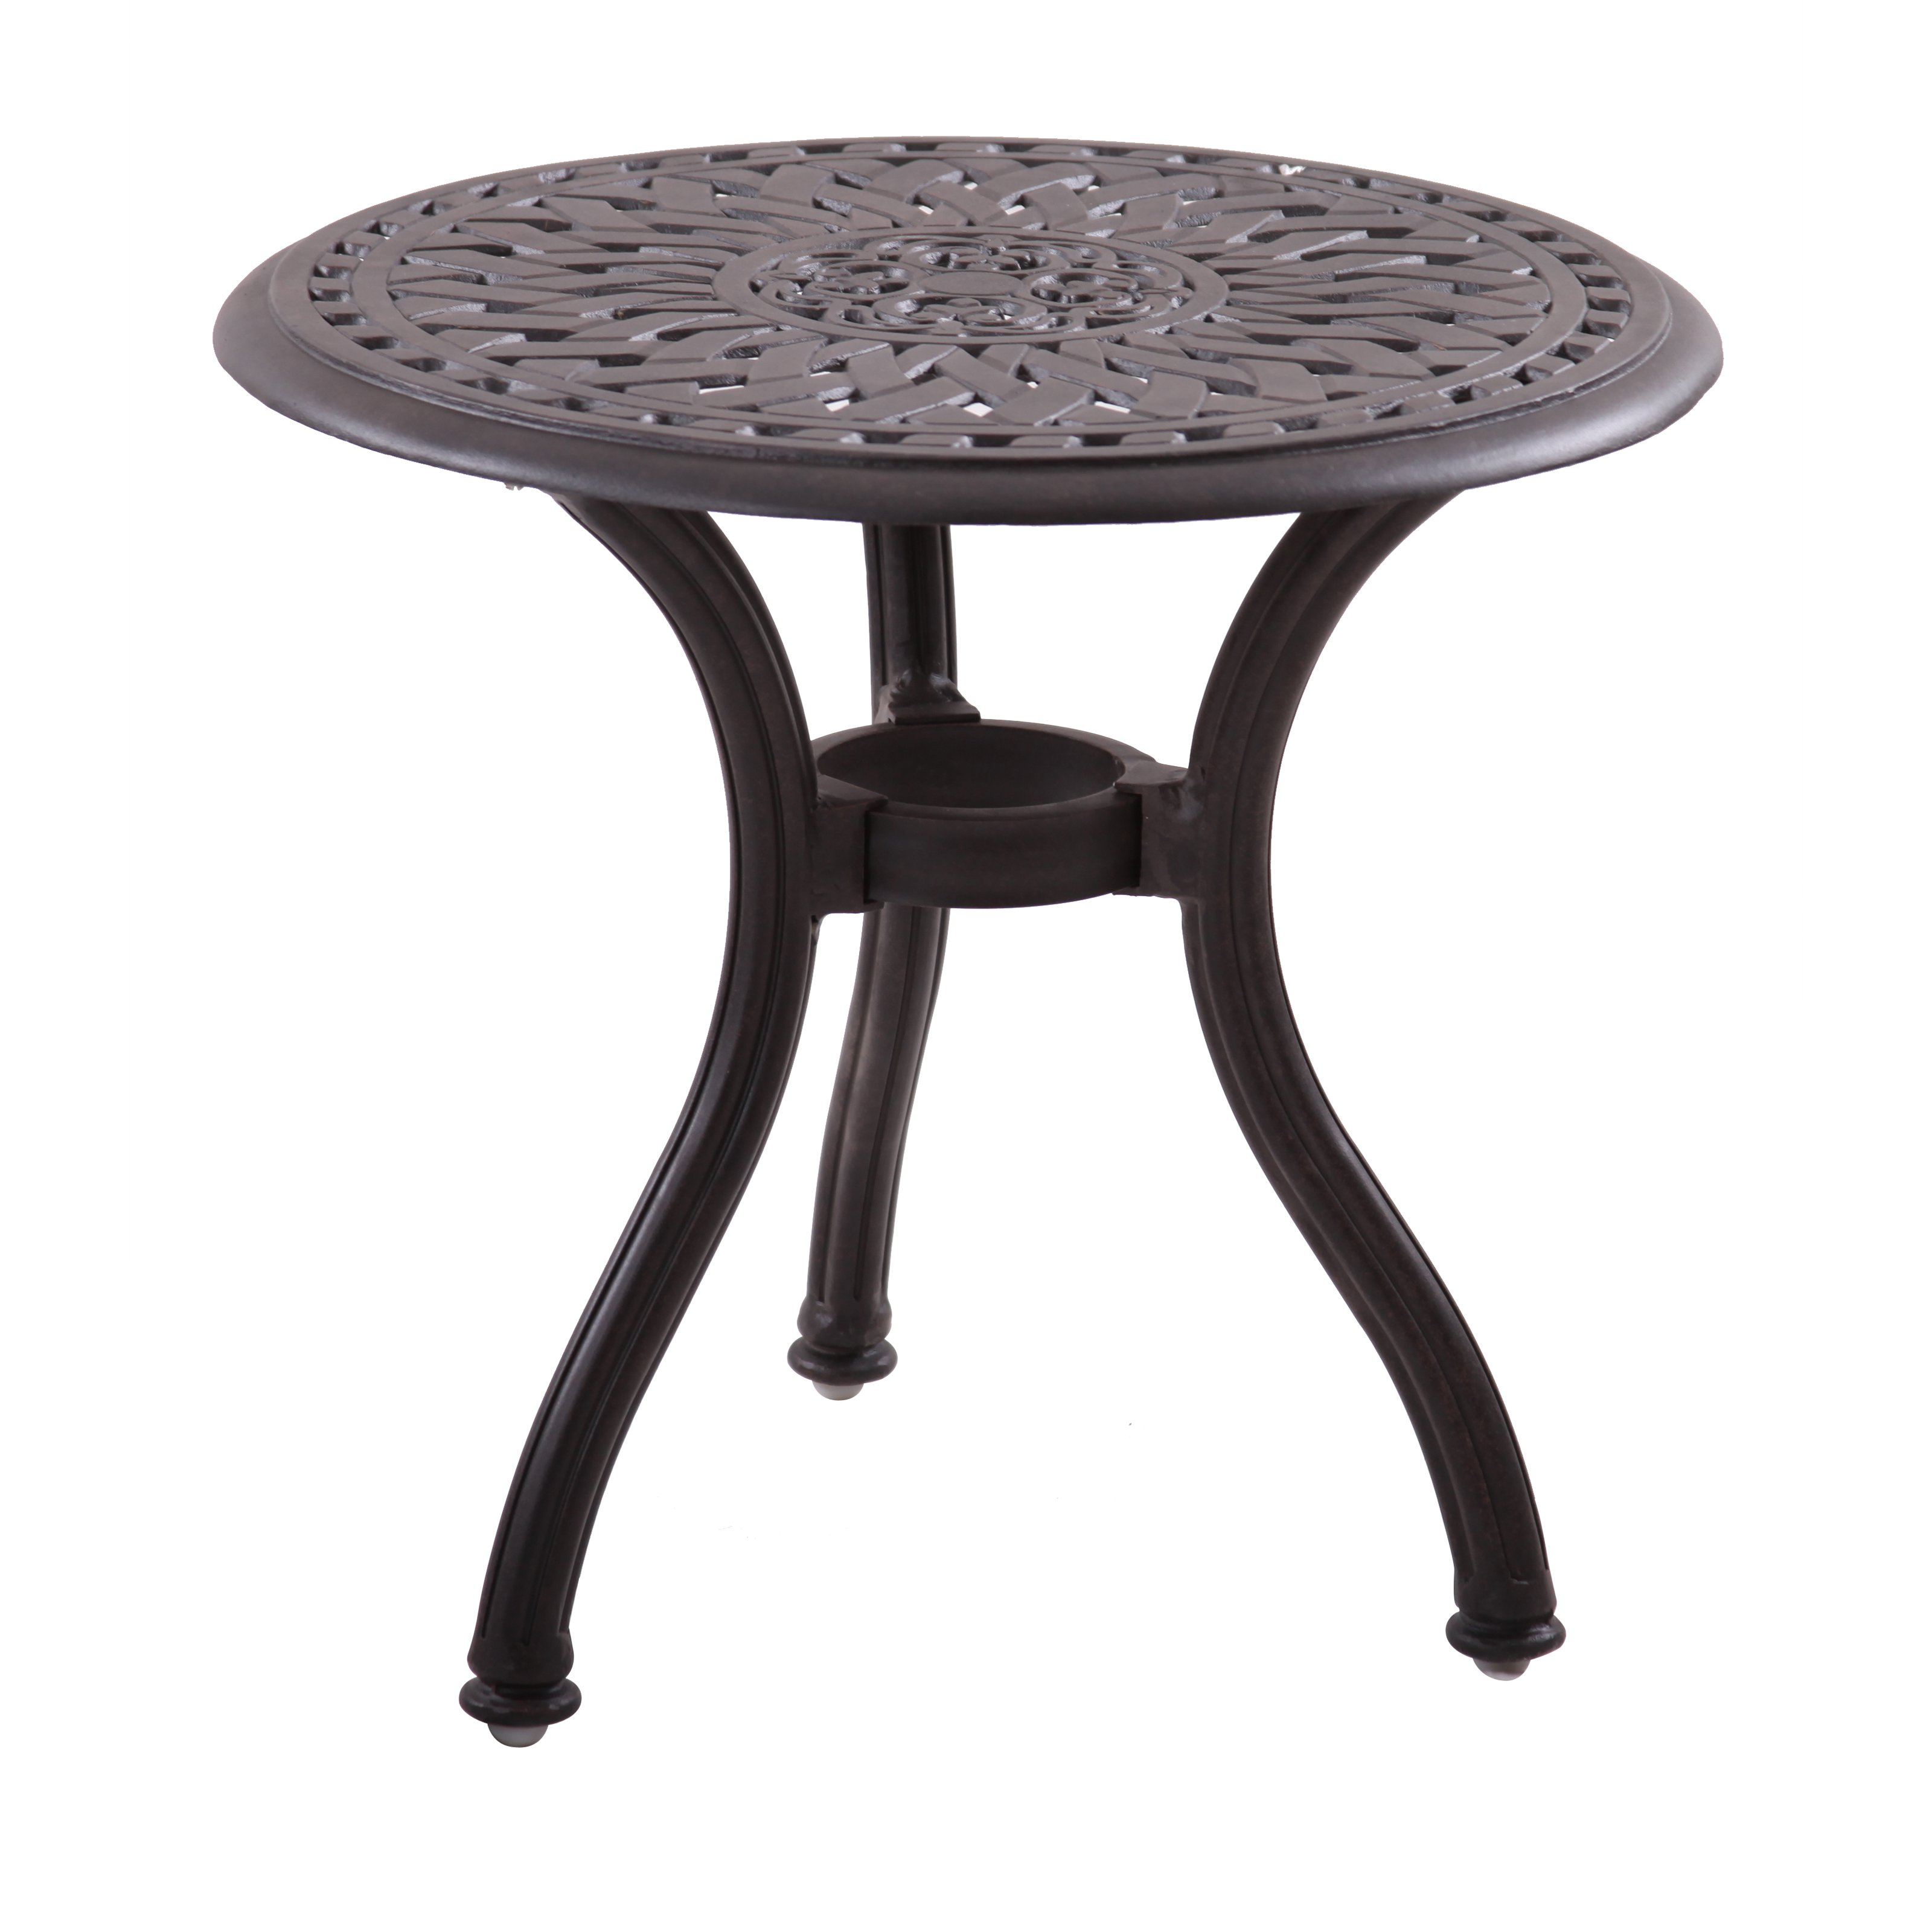 homecrest glass top square end table patio accent tables hampton bay darlee series cast aluminum round outdoor woven metal threshold hummingbird garden hall decor and chairs small